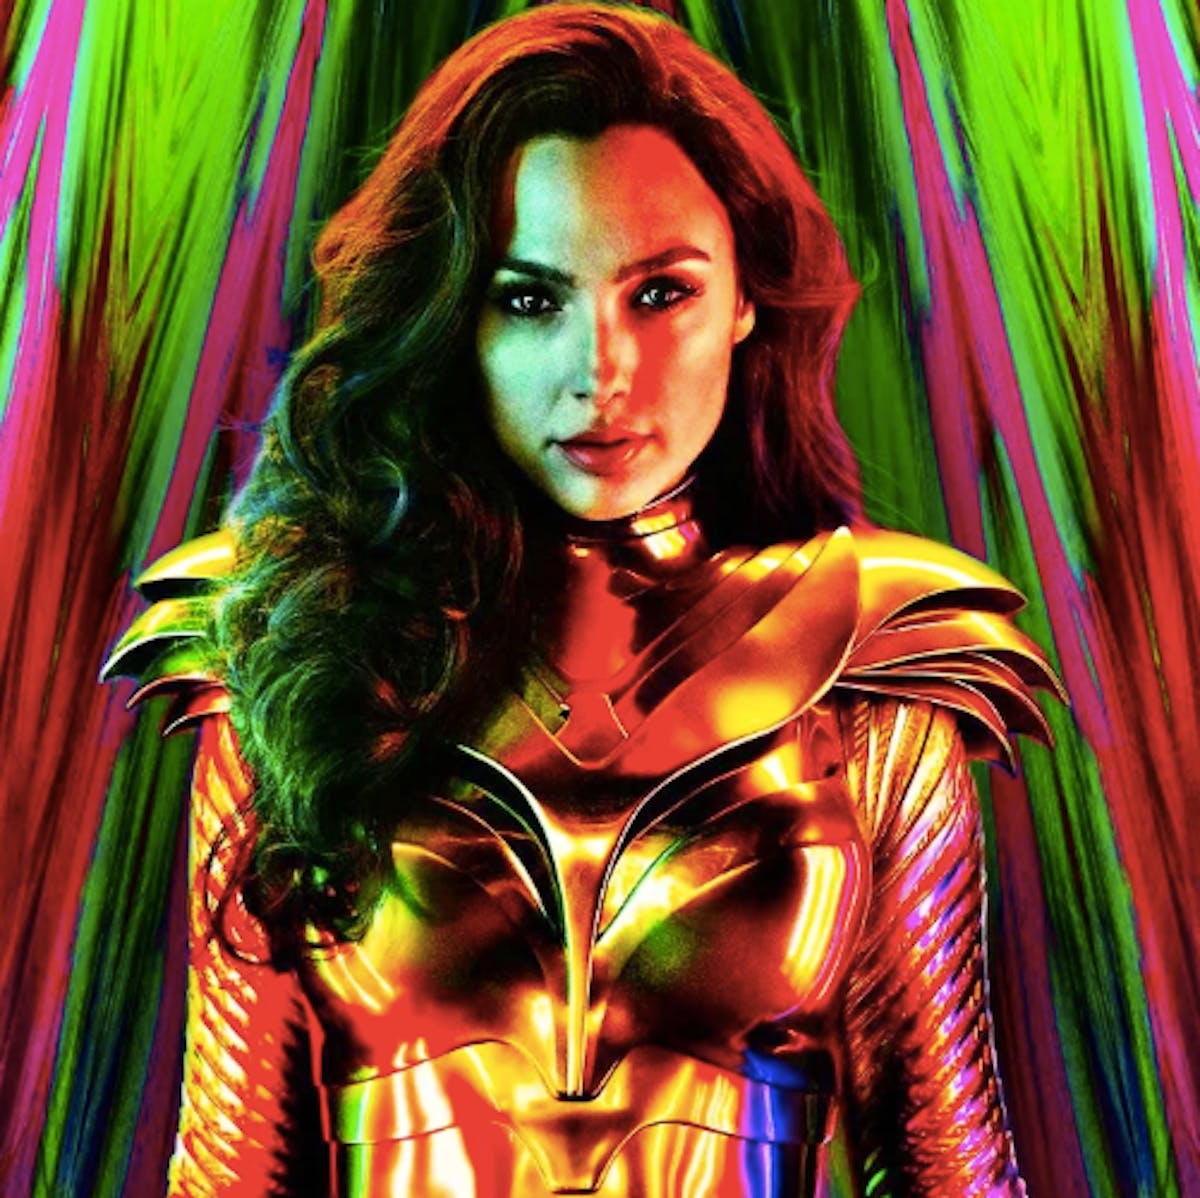 'Wonder Woman 1984' trailer reveals a return to Themyscira and Chris Pine